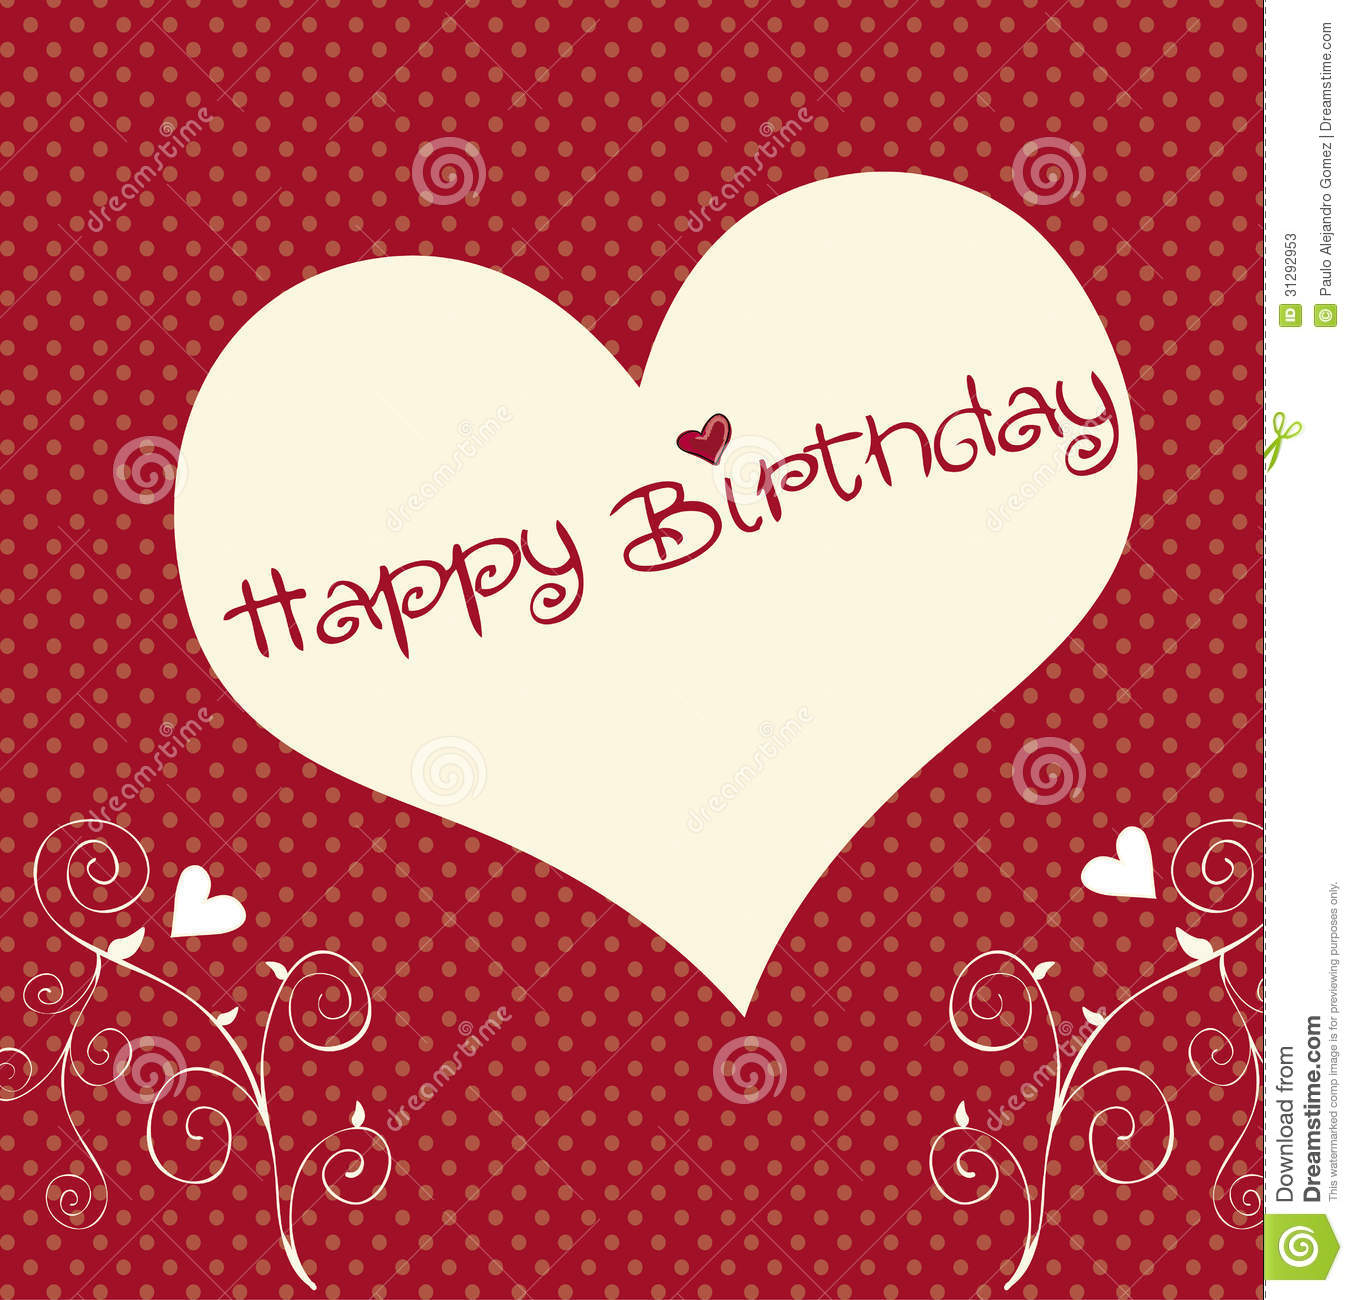 Heart happy birthday over dotted background vector illustration.